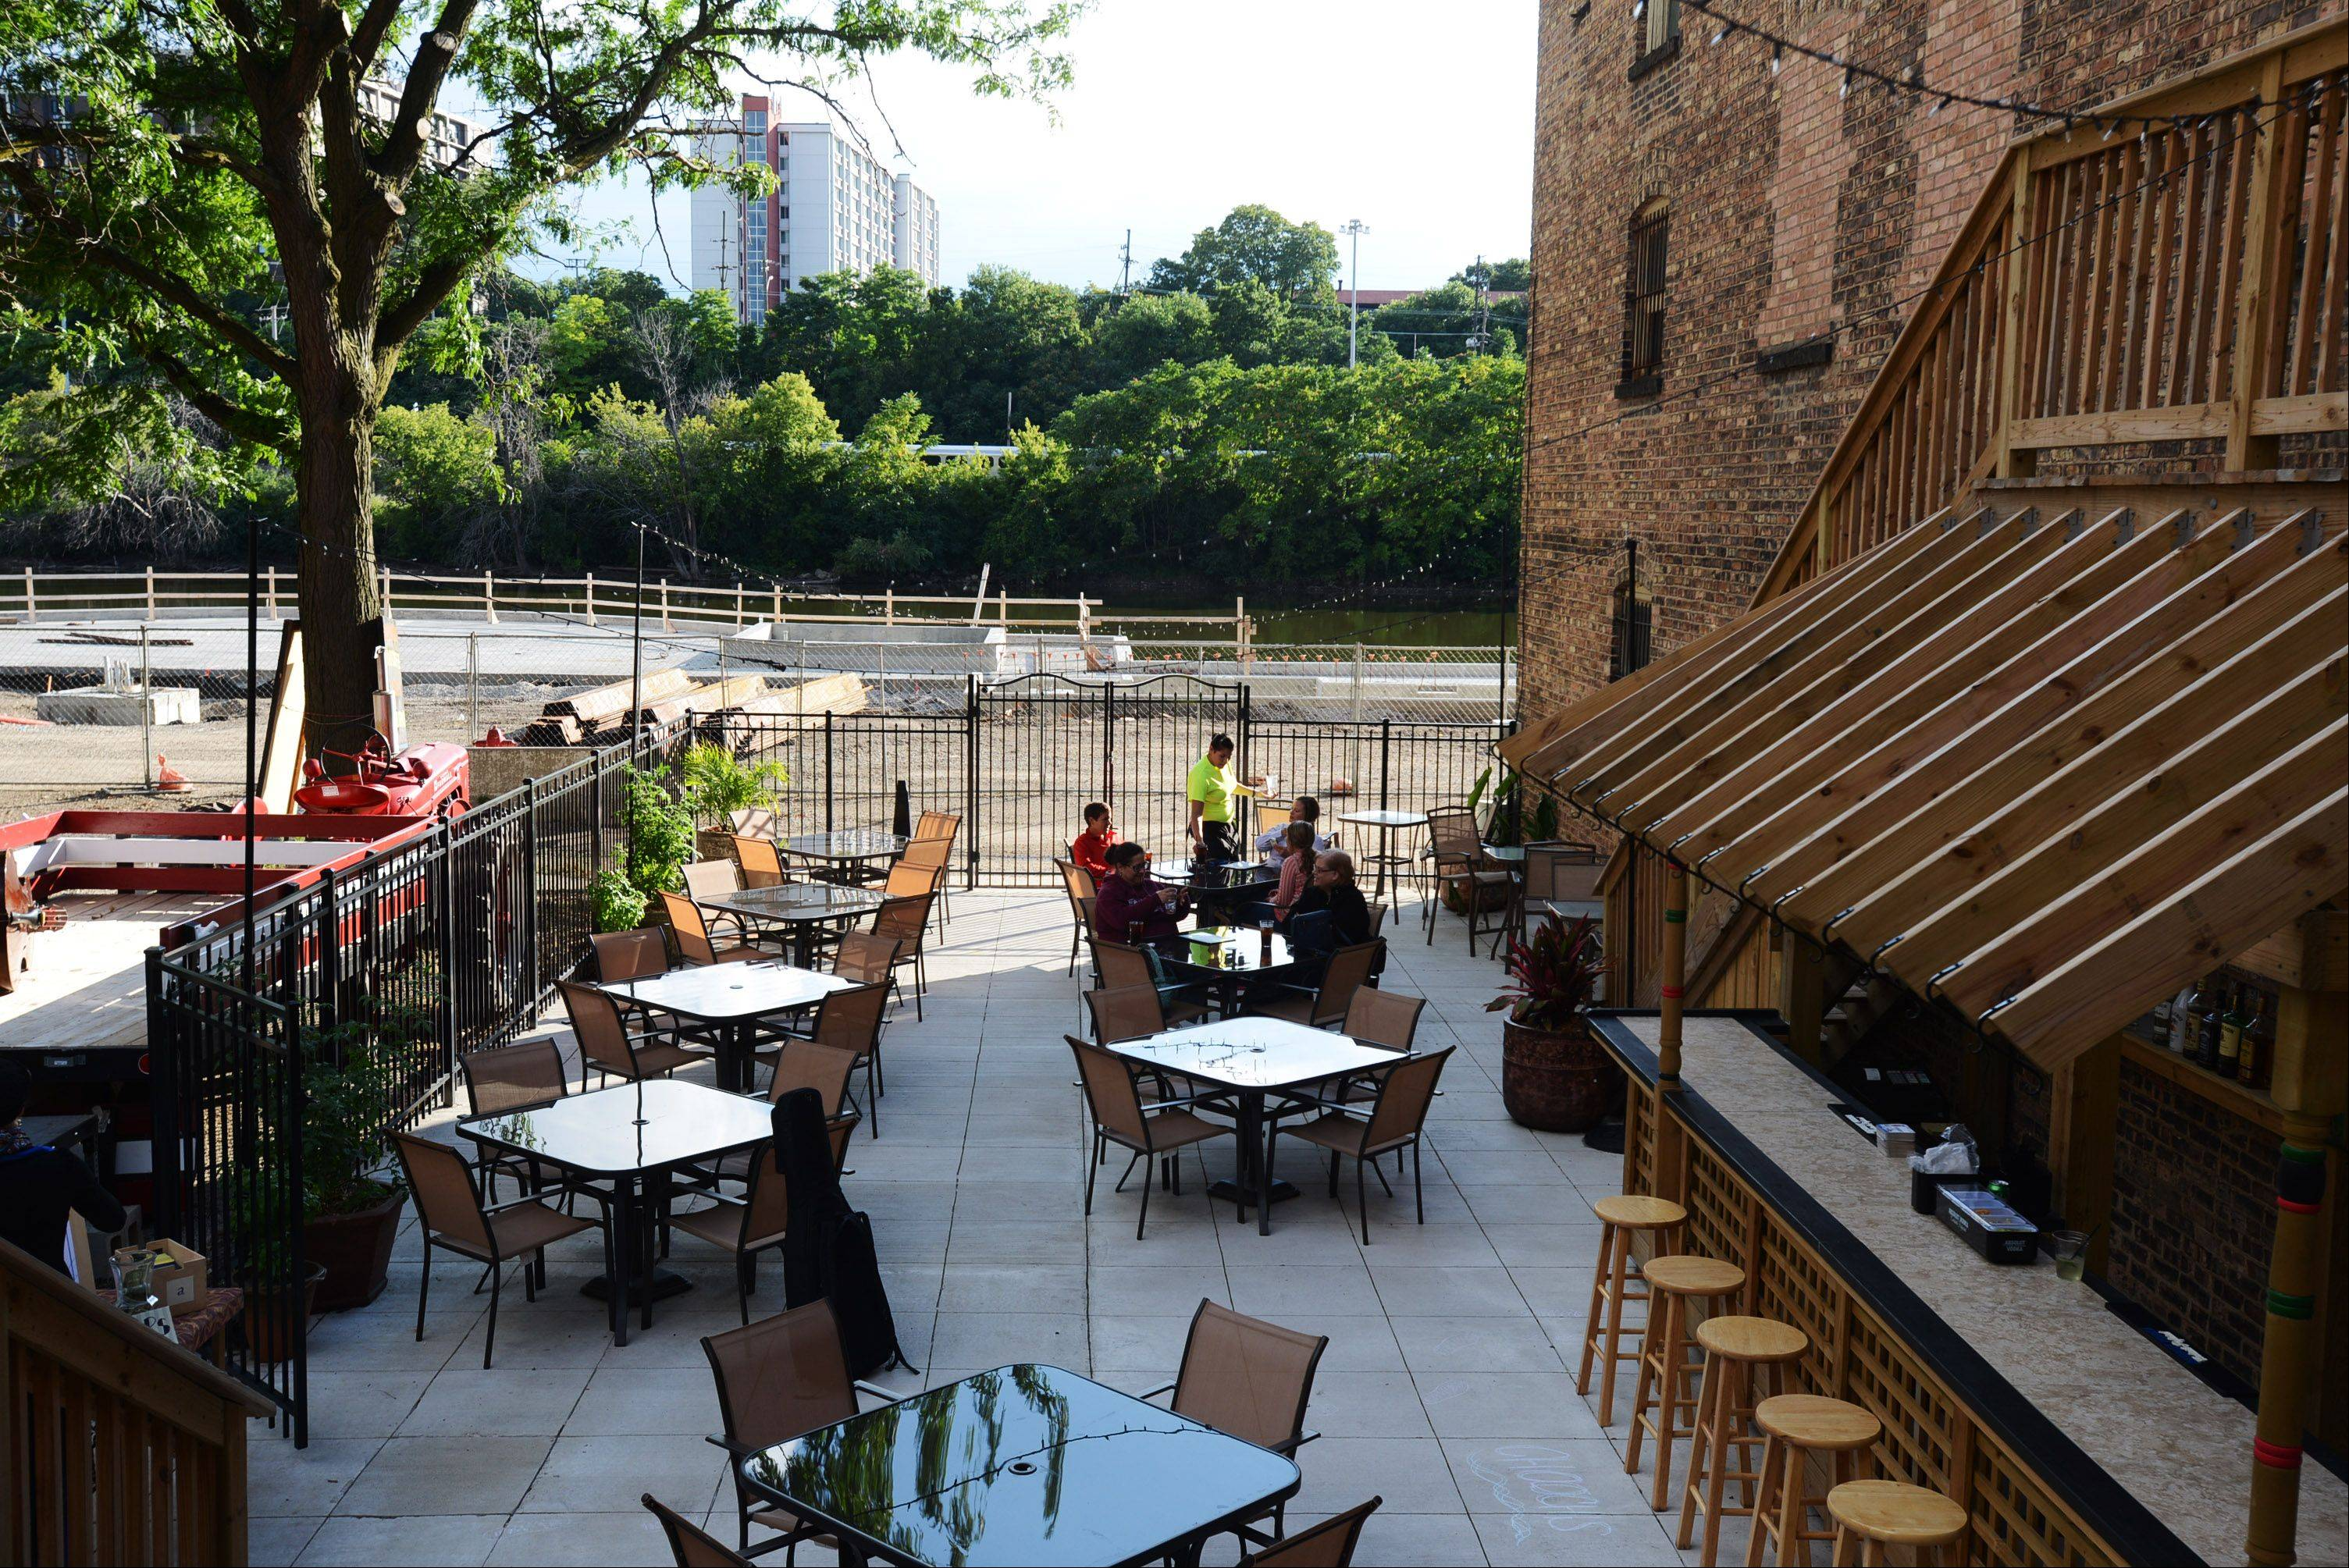 Chooch's Pizzeria on Grove Avenue is the first business to create a patio that has a view of the river. The business opened in December and the patio opened in June.